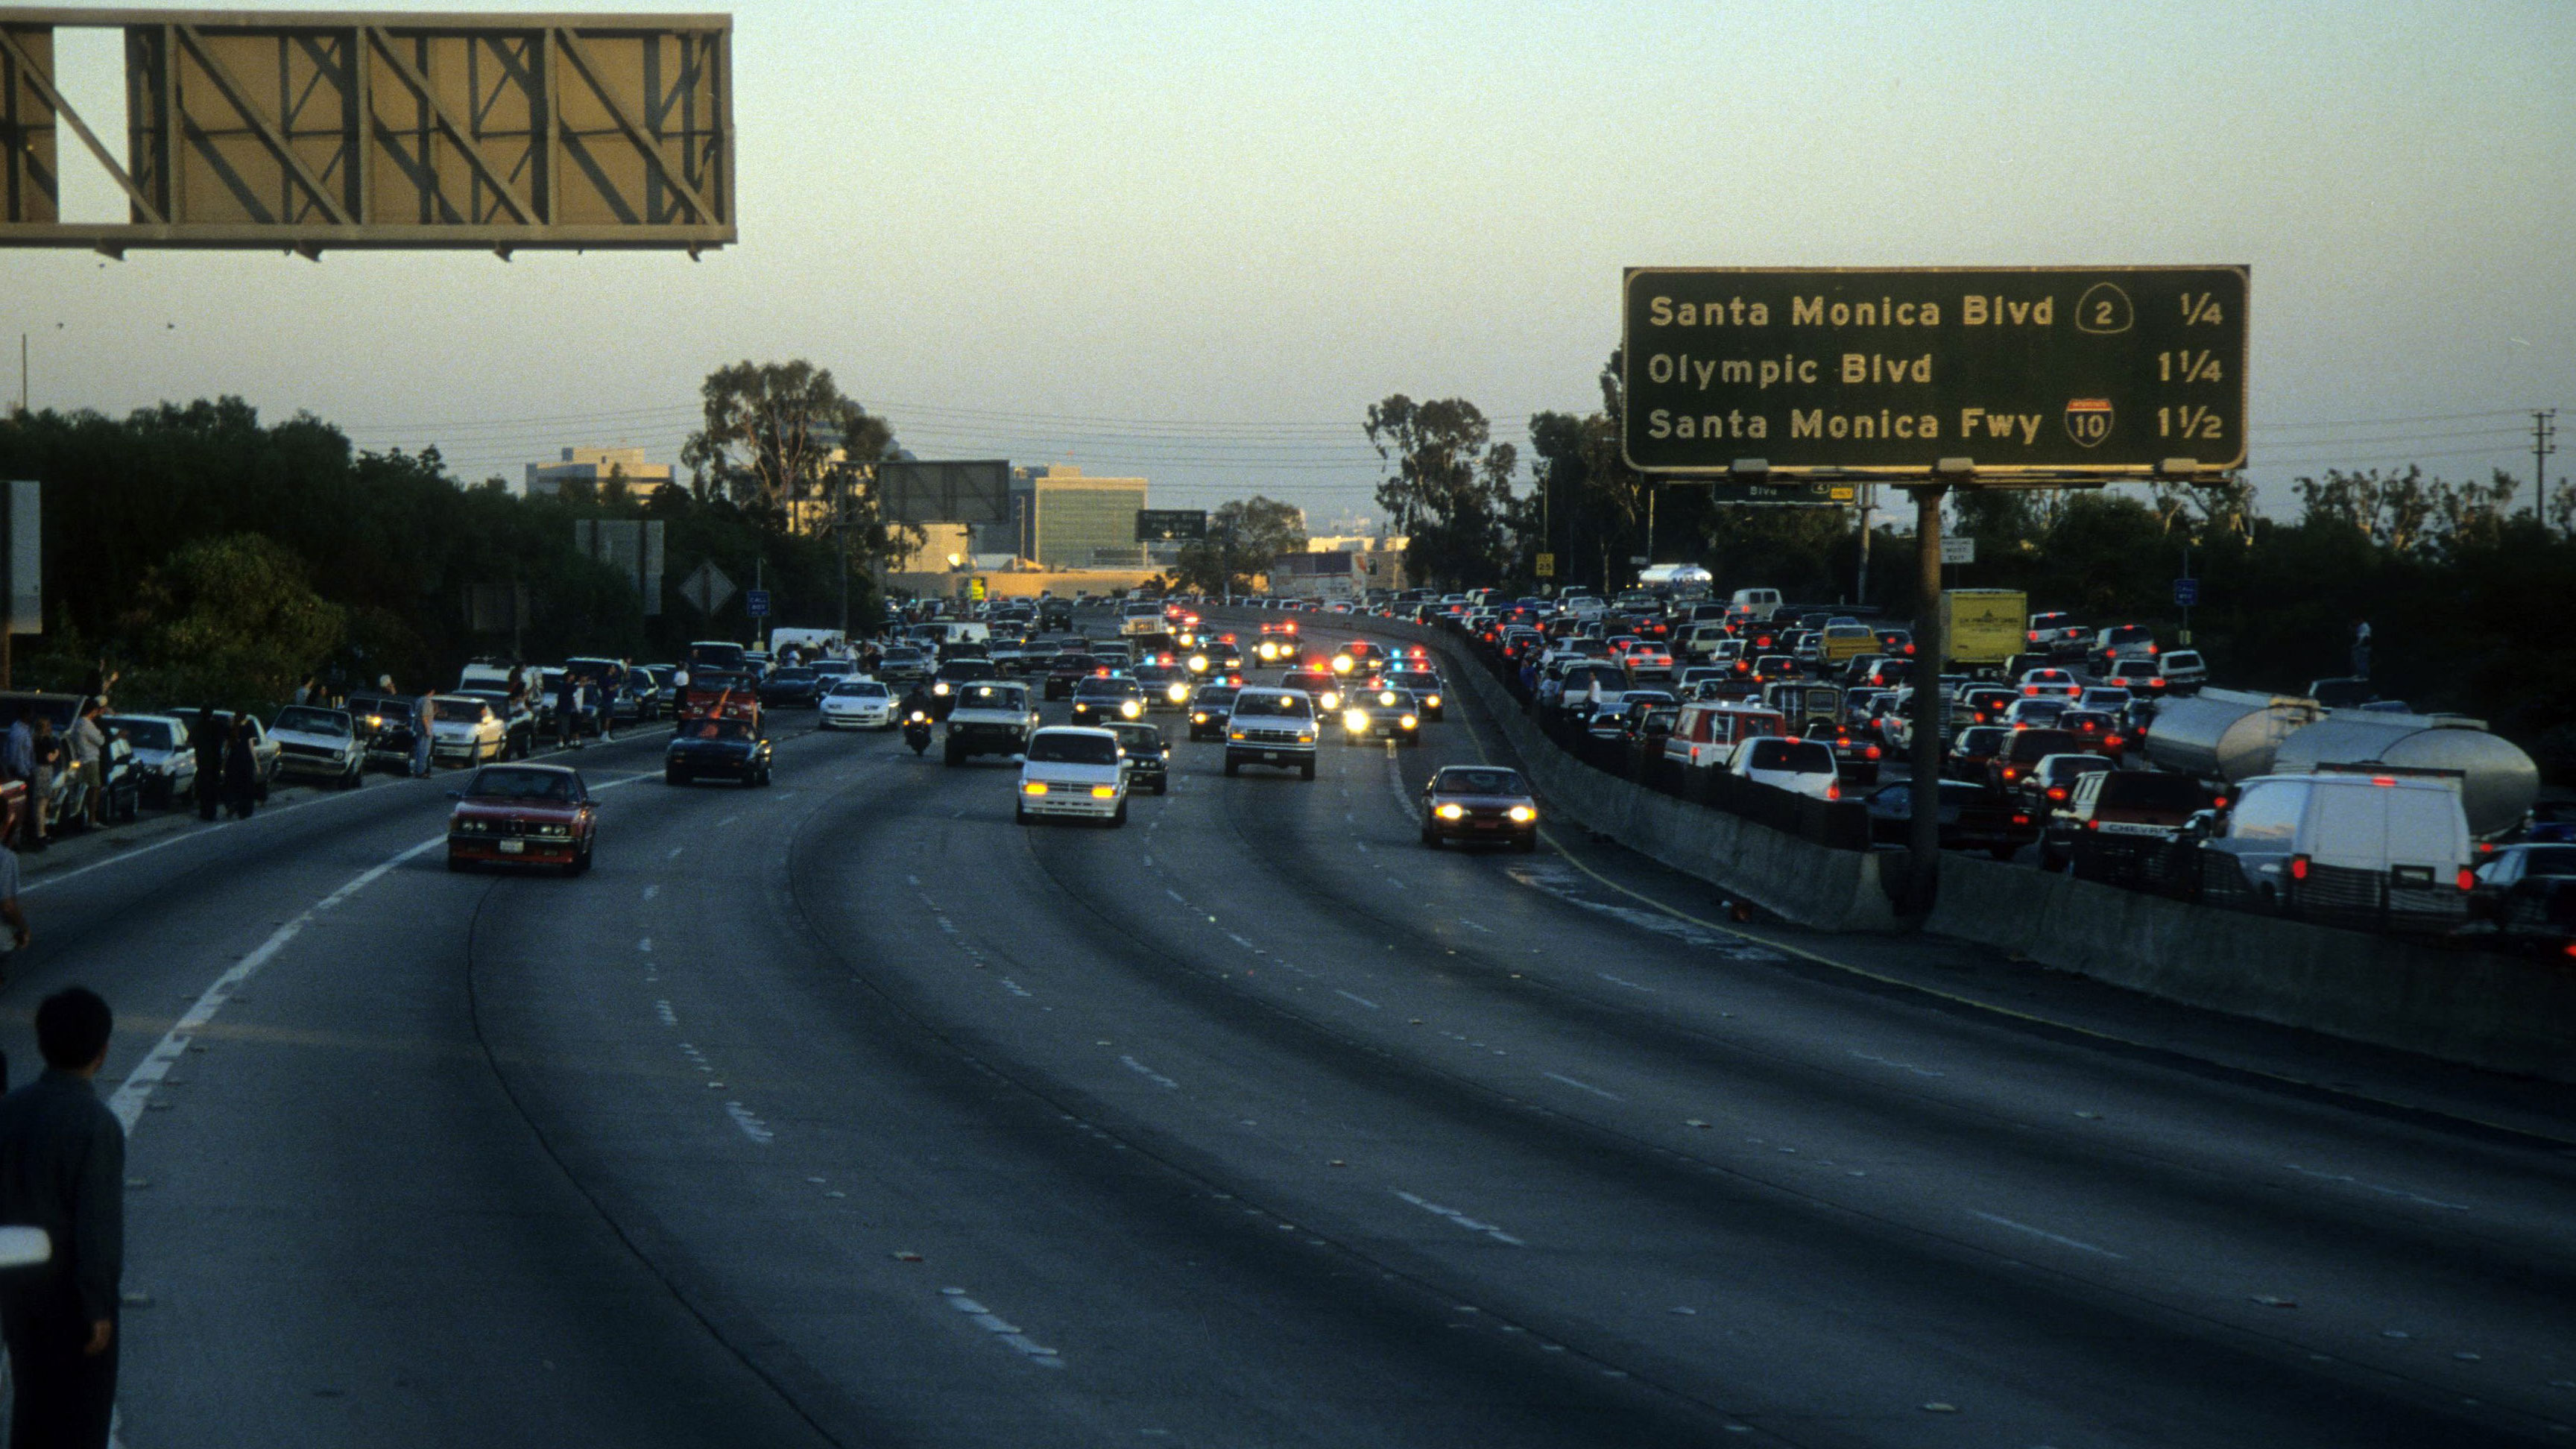 Police cars pursue the Ford Bronco driven by Al Cowlings, carrying then fugitive murder suspect O.J. Simpson, on a slow-speed car chase June 17, 1994 on the 405 freeway in Los Angeles, California. Simpson's friend Cowlings eventually drove Simpson home, with Simpson ducked under the back passenger seat, to Brentwood where he surrendered after a stand-off with police.